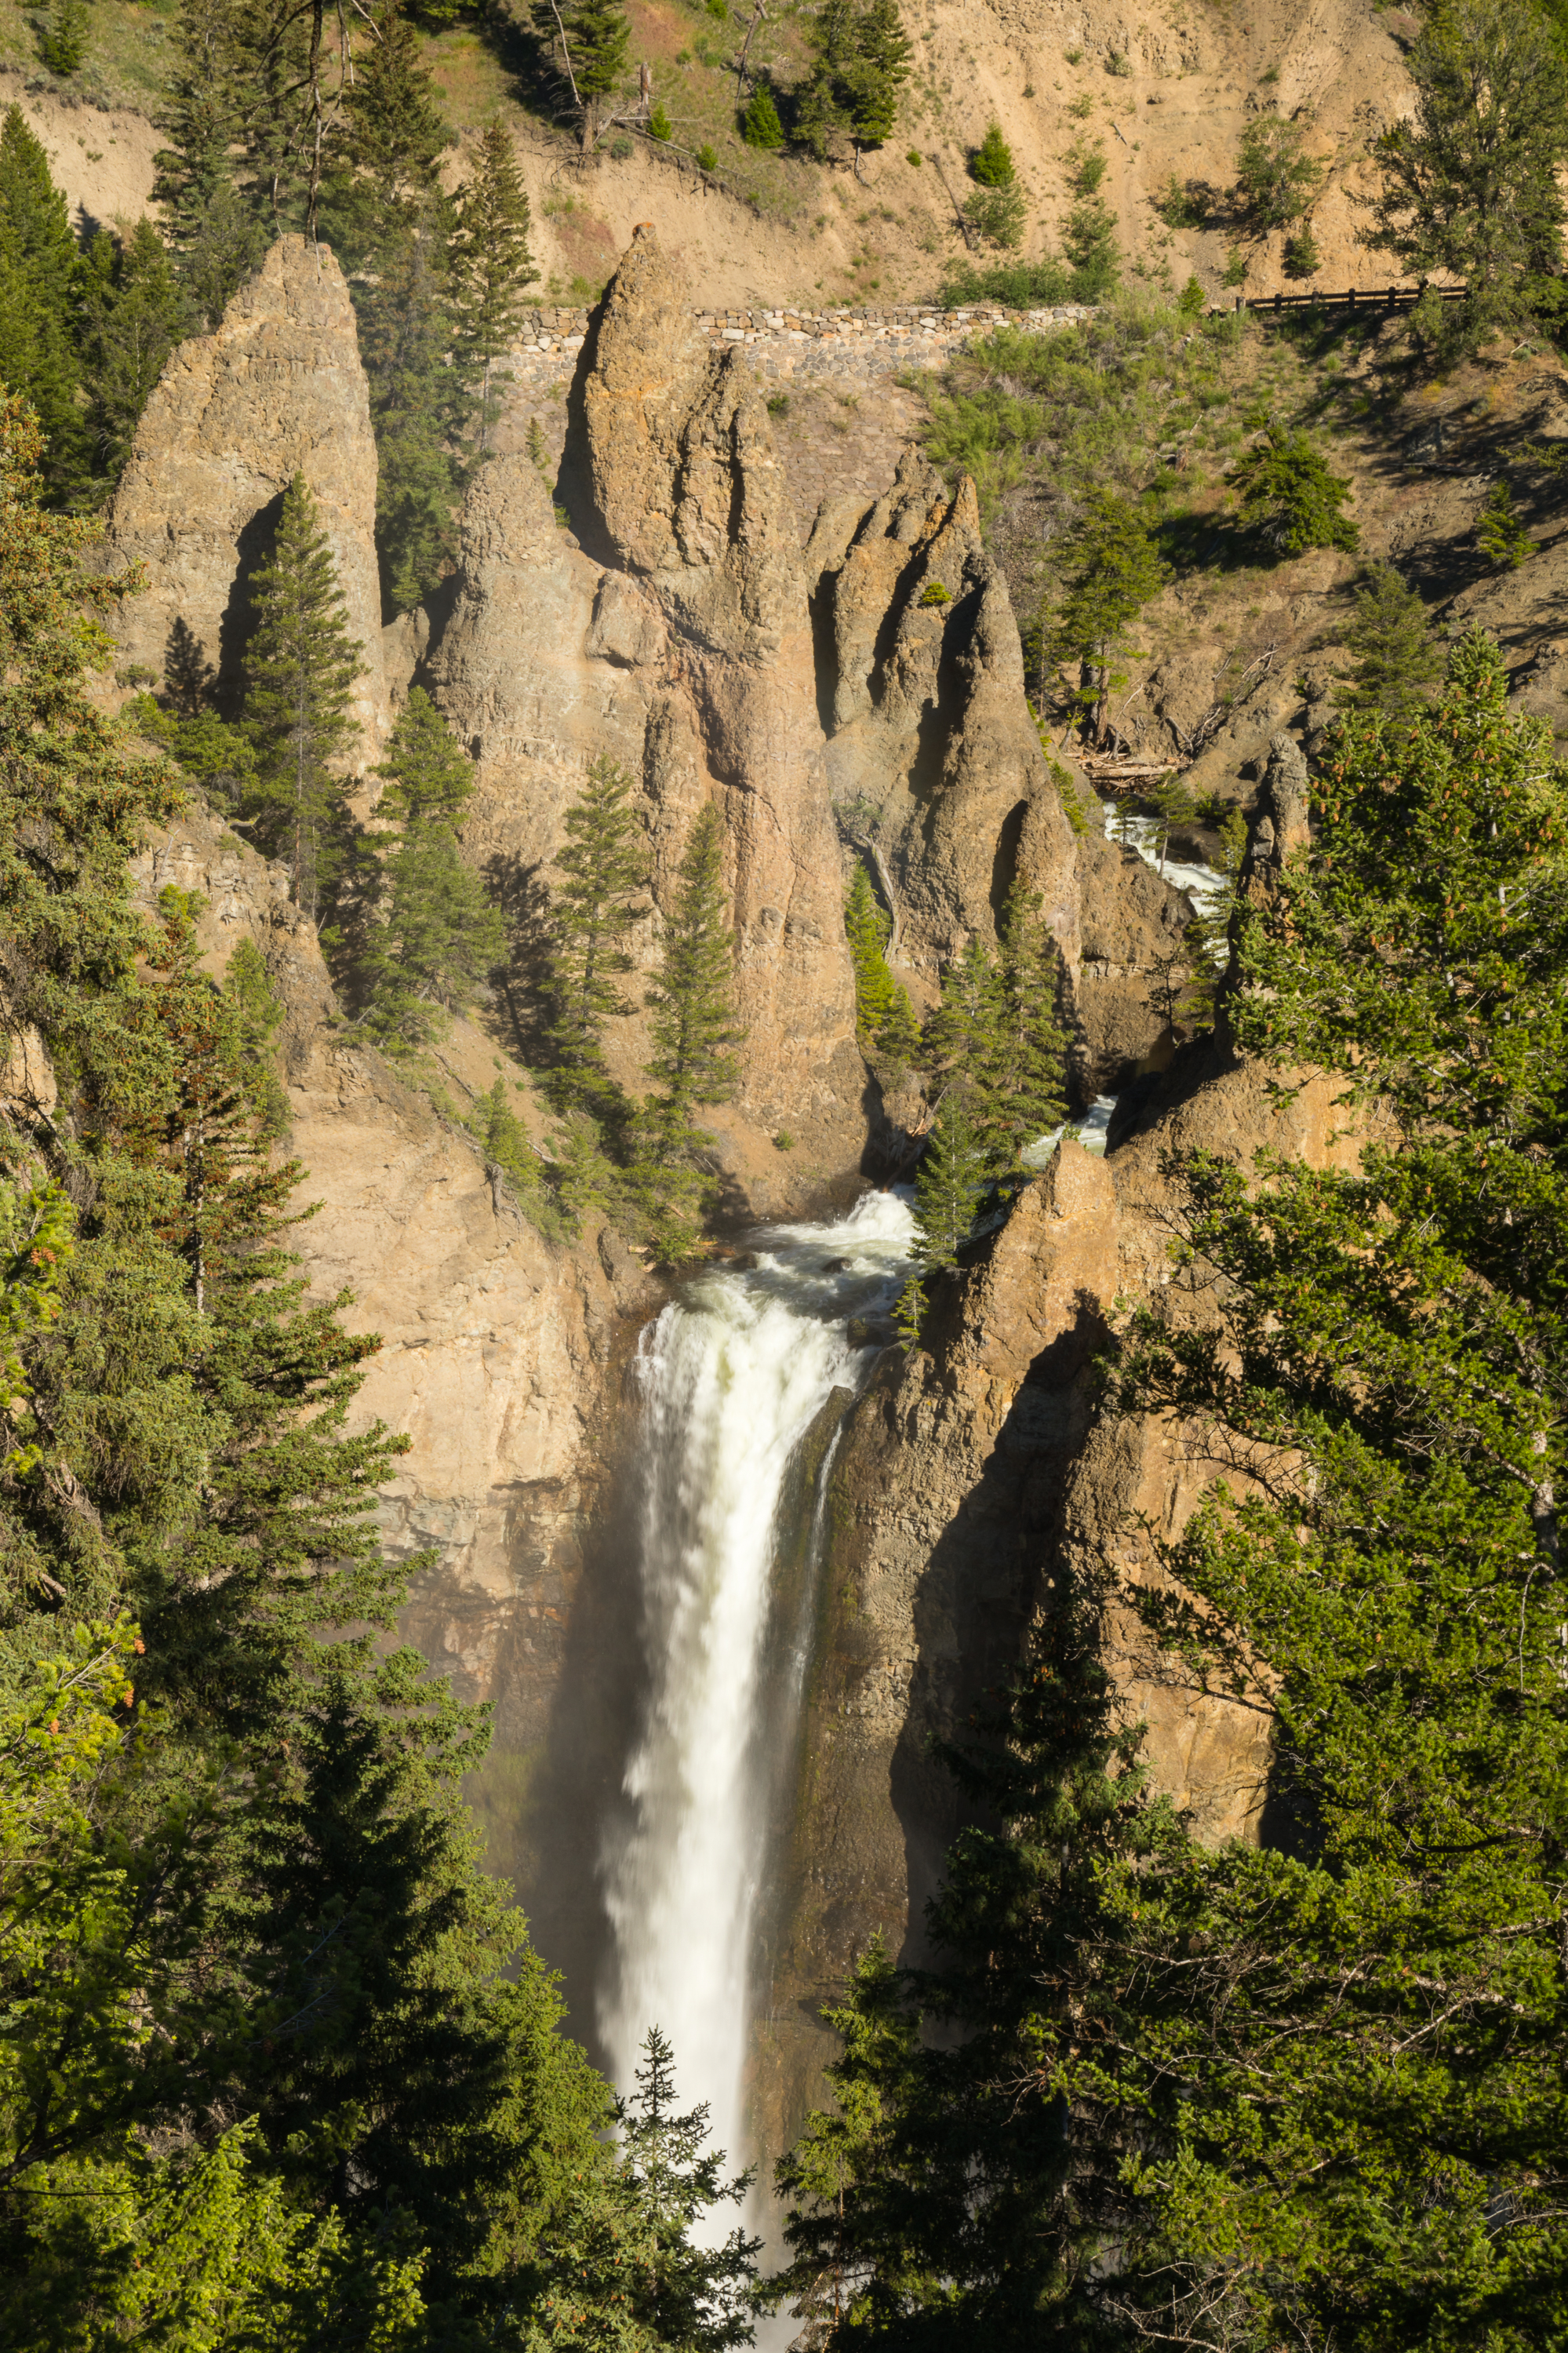 Tower-Roosevelt Waterfall, Image # 7670